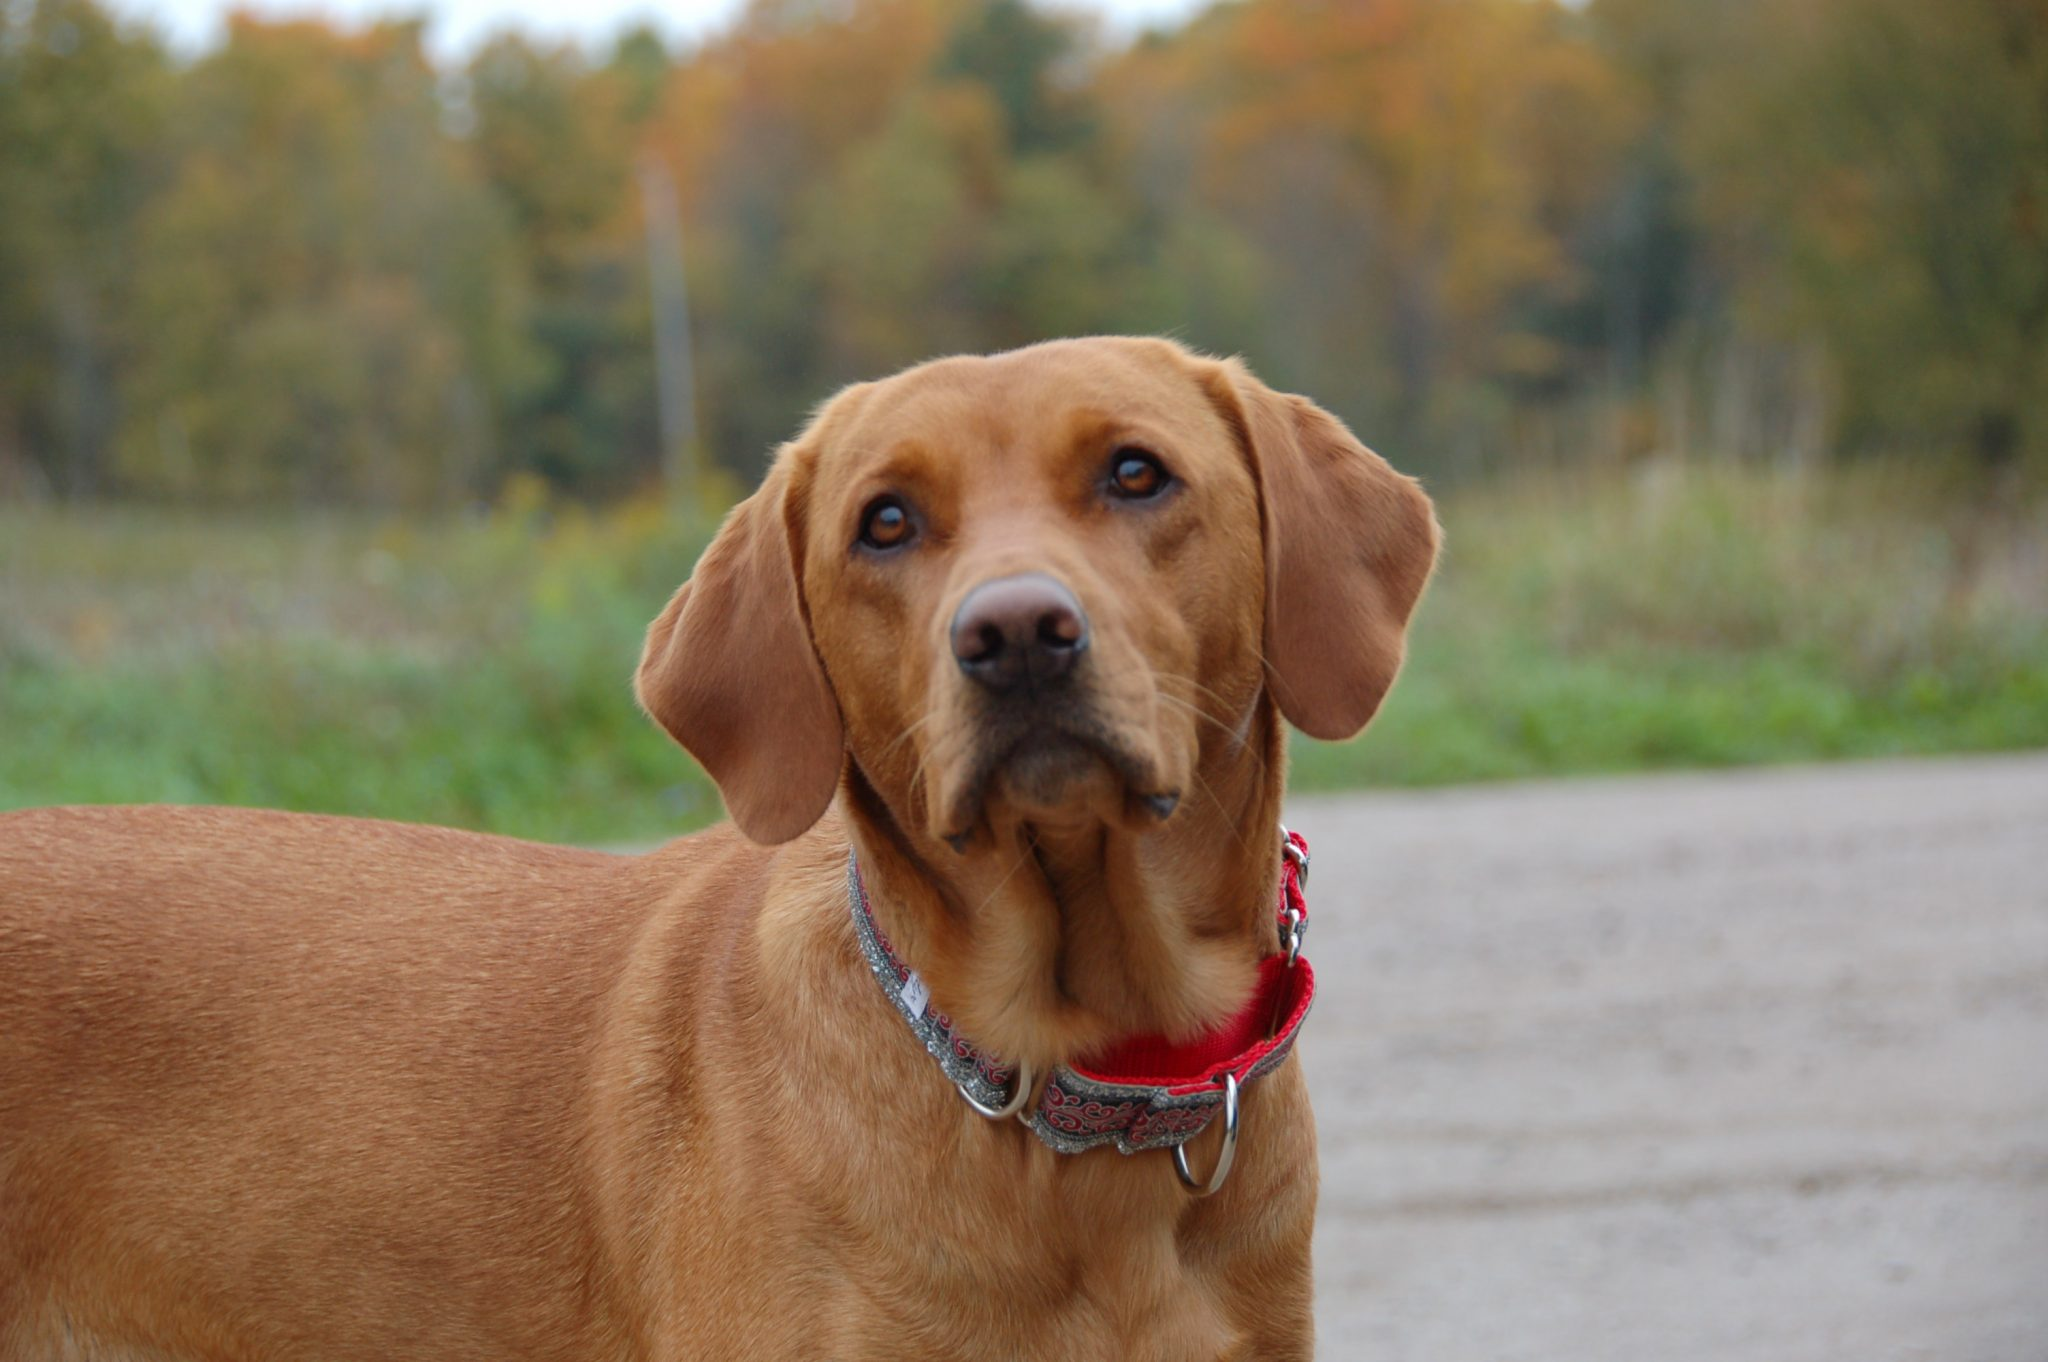 Red Labrador facial features